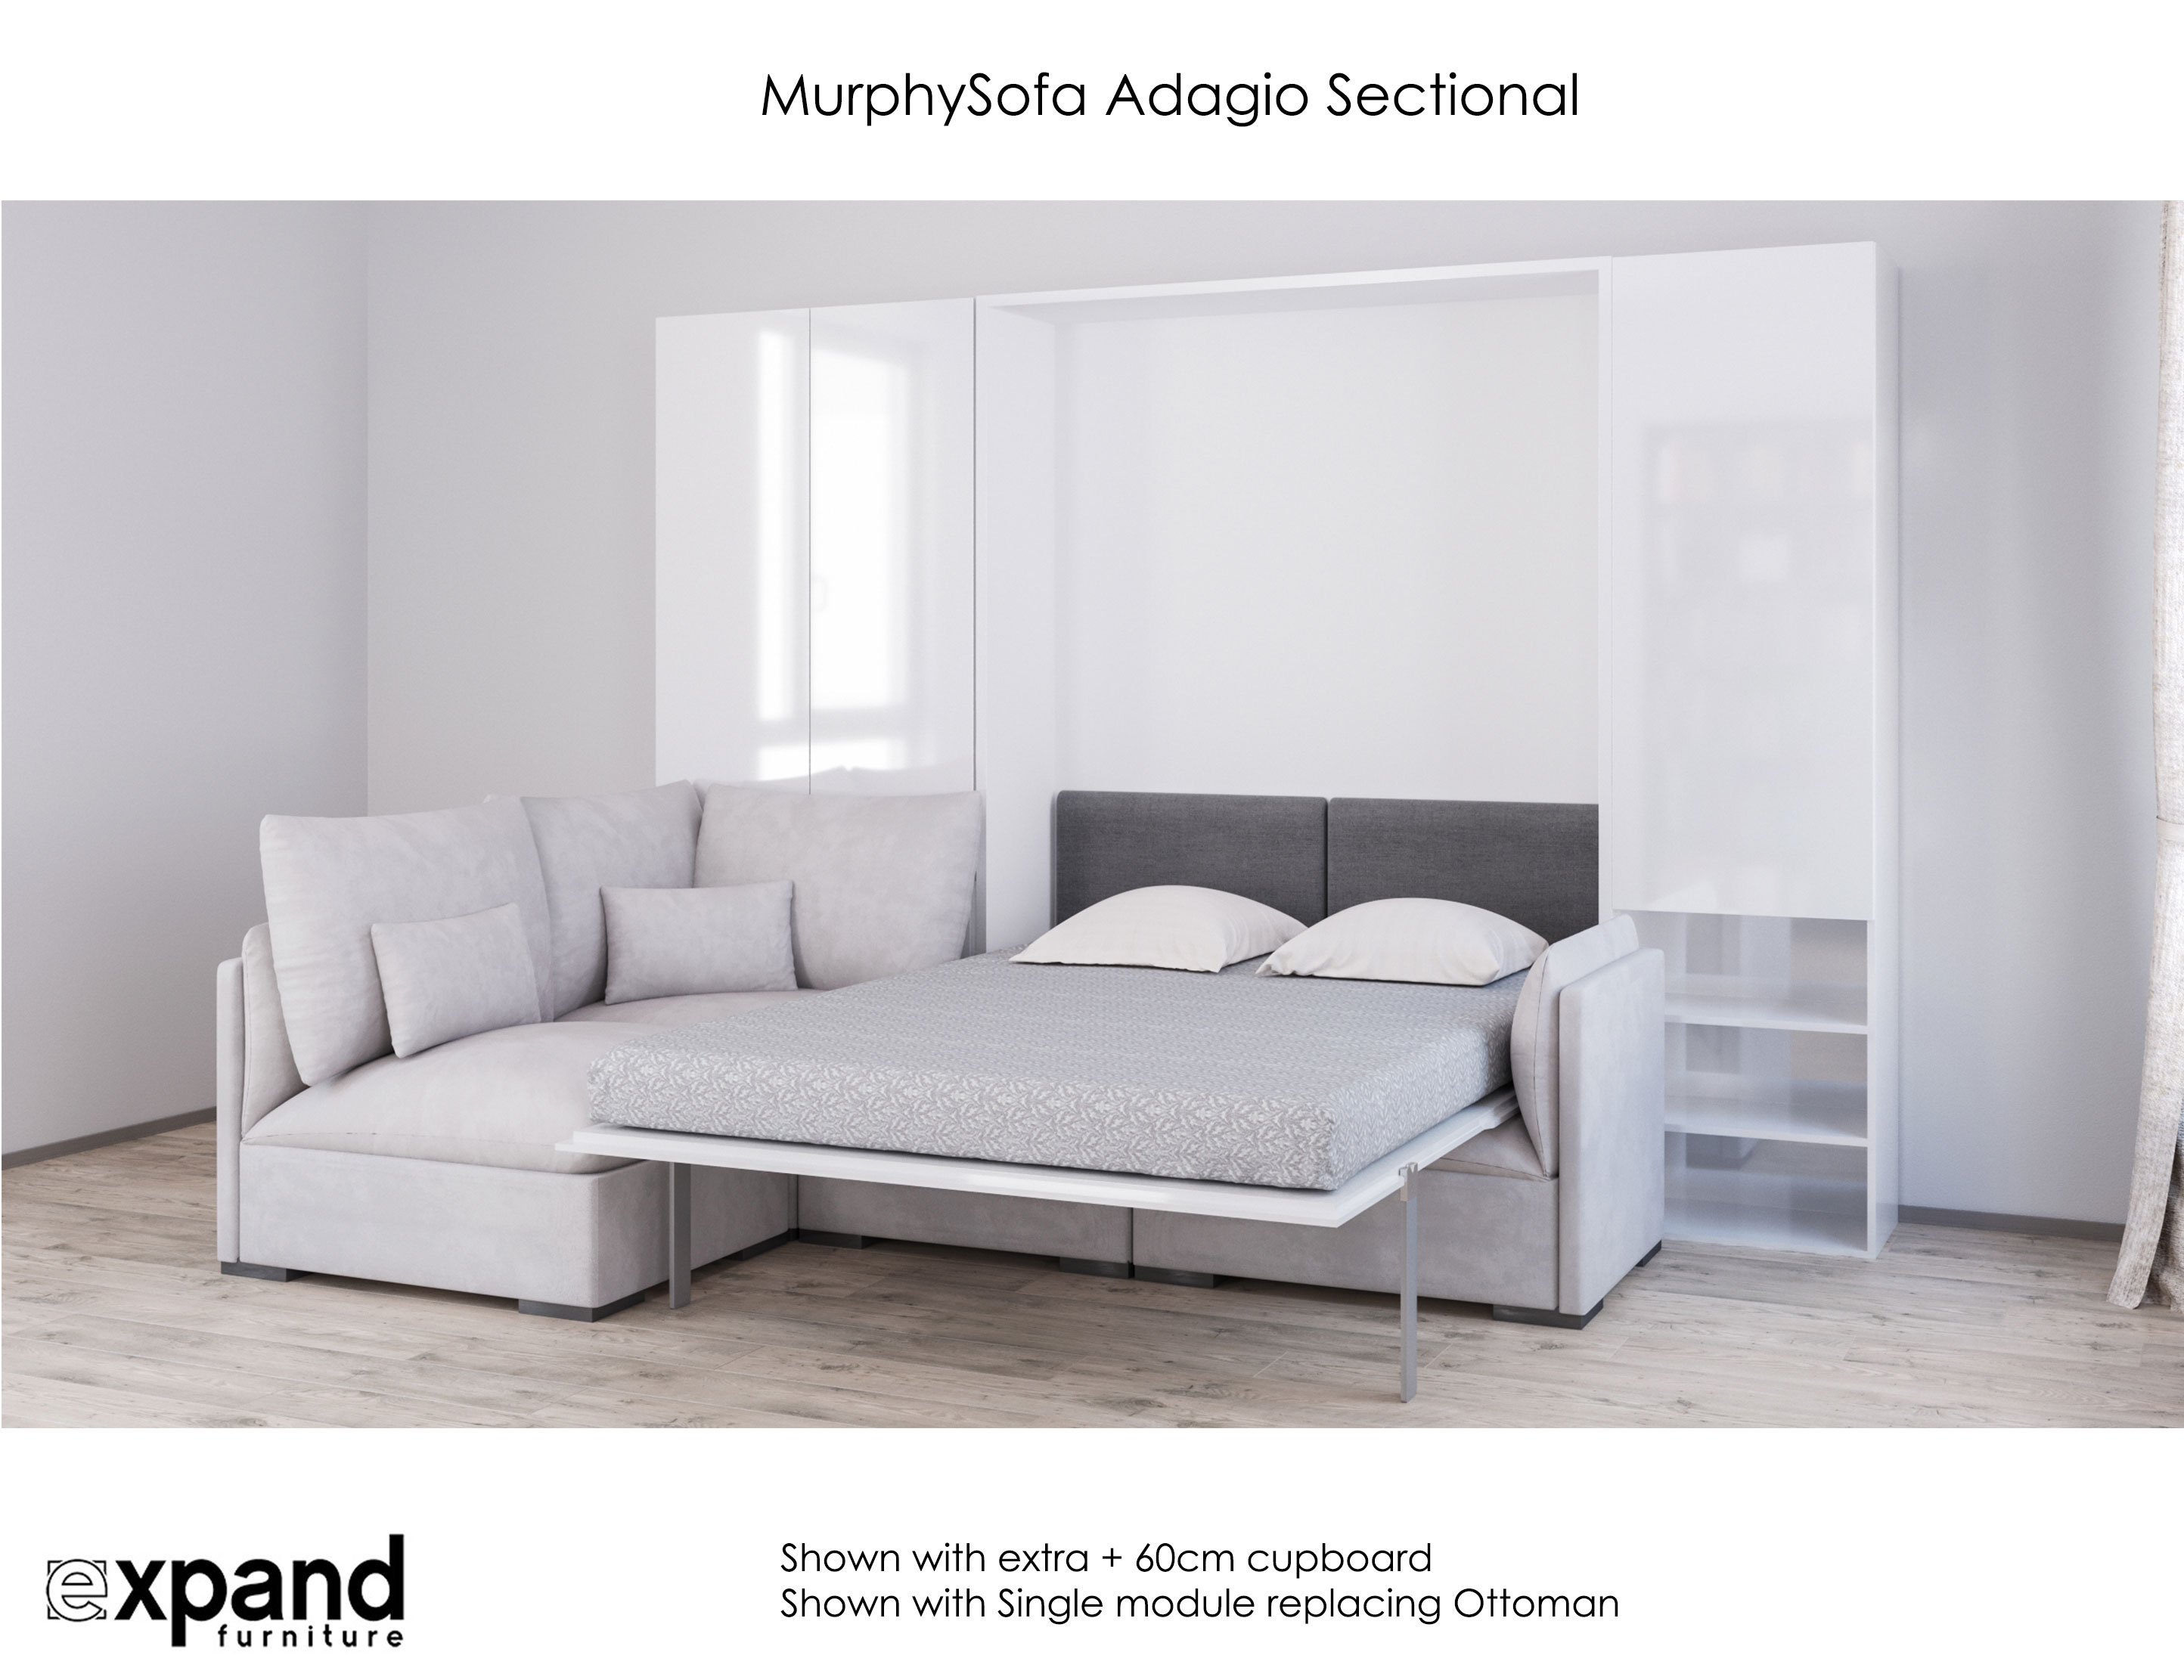 Murphysofa adagio queen luxury sectional sofa wall bed expand furniture folding tables Murphy bed over couch